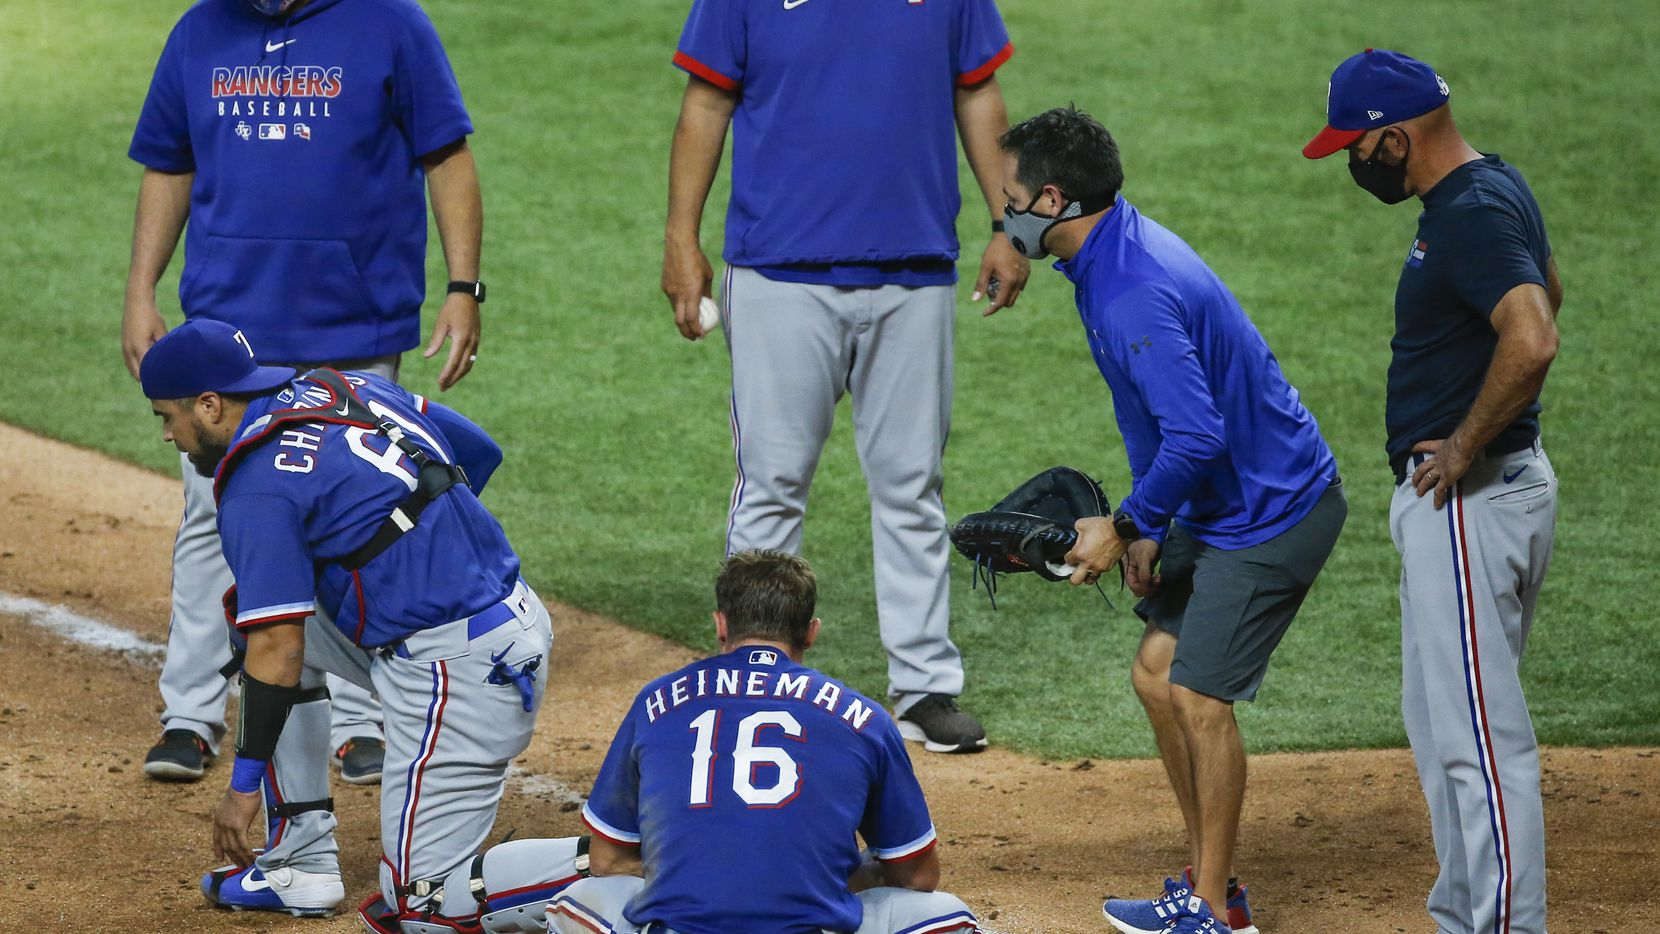 Catcher Robinson Chirinos works to stand up after being injured during a run-in at home plater as the Texas Rangers play an intrasquad game during Summer Camp on Monday, July 13, 2020 at Globe Life Field in Arlington, Texas. (Ryan Michalesko/The Dallas Morning News)